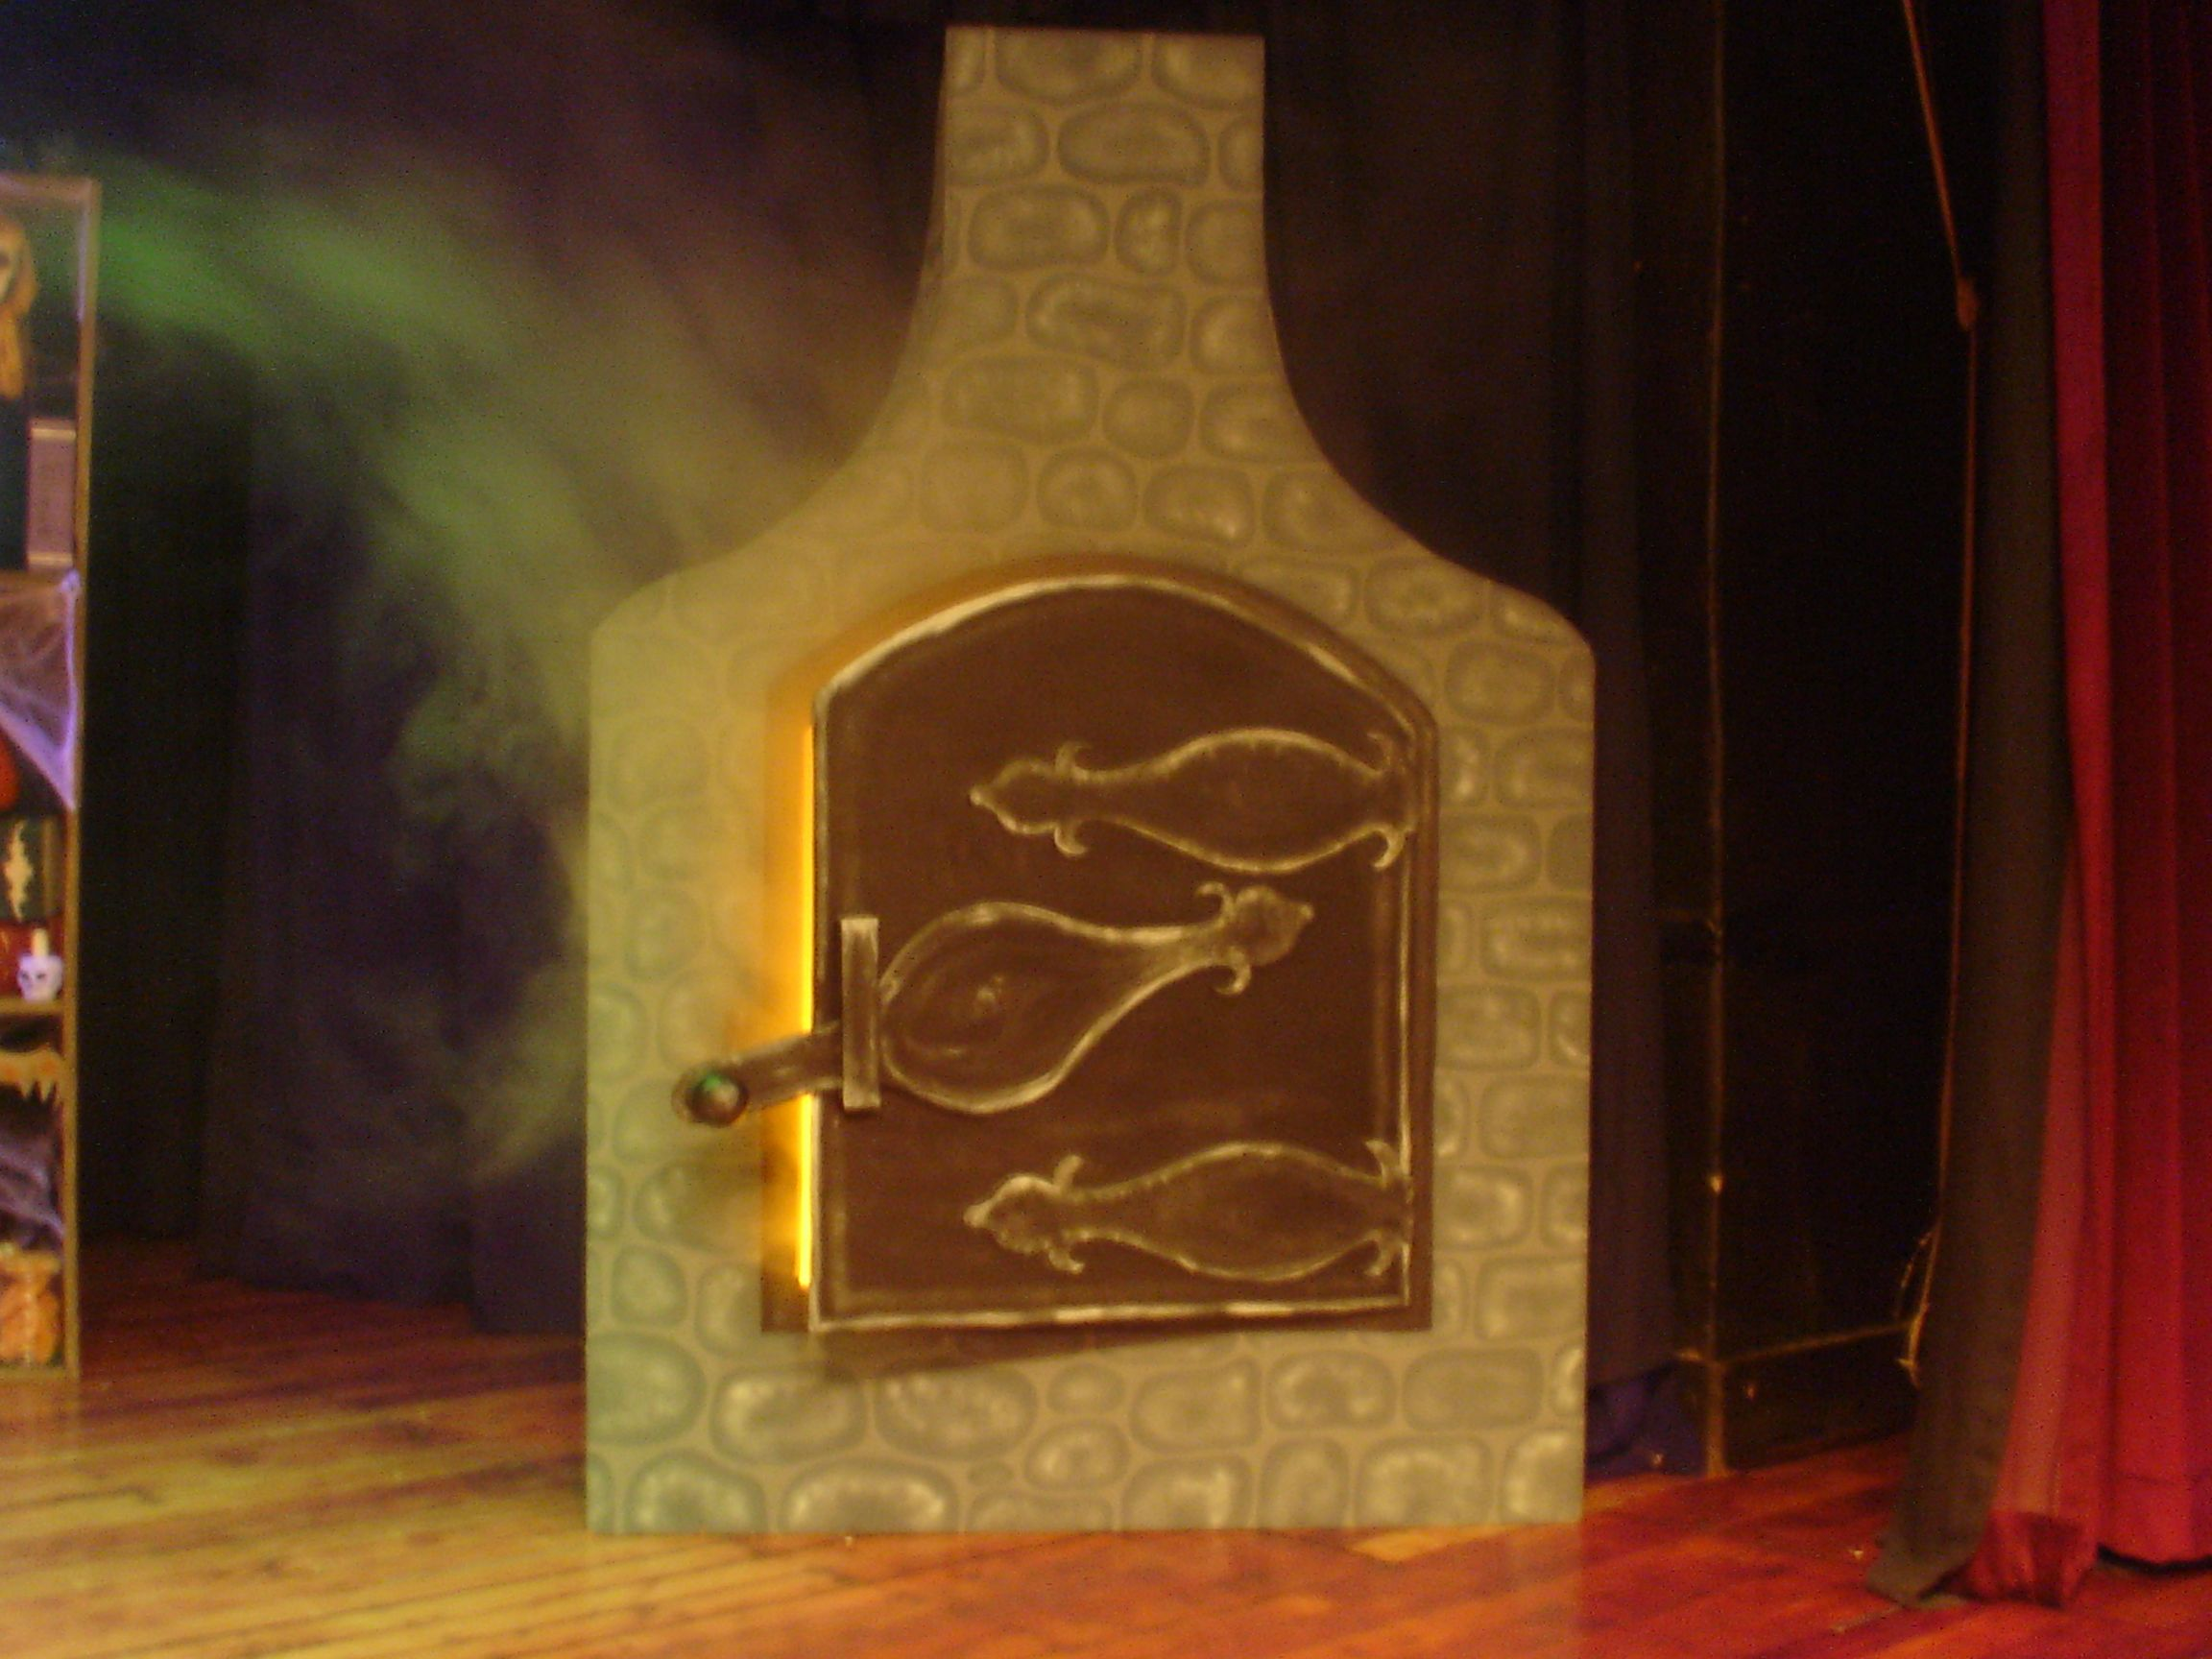 Oven Stage Prop Made For The Stage Production Of